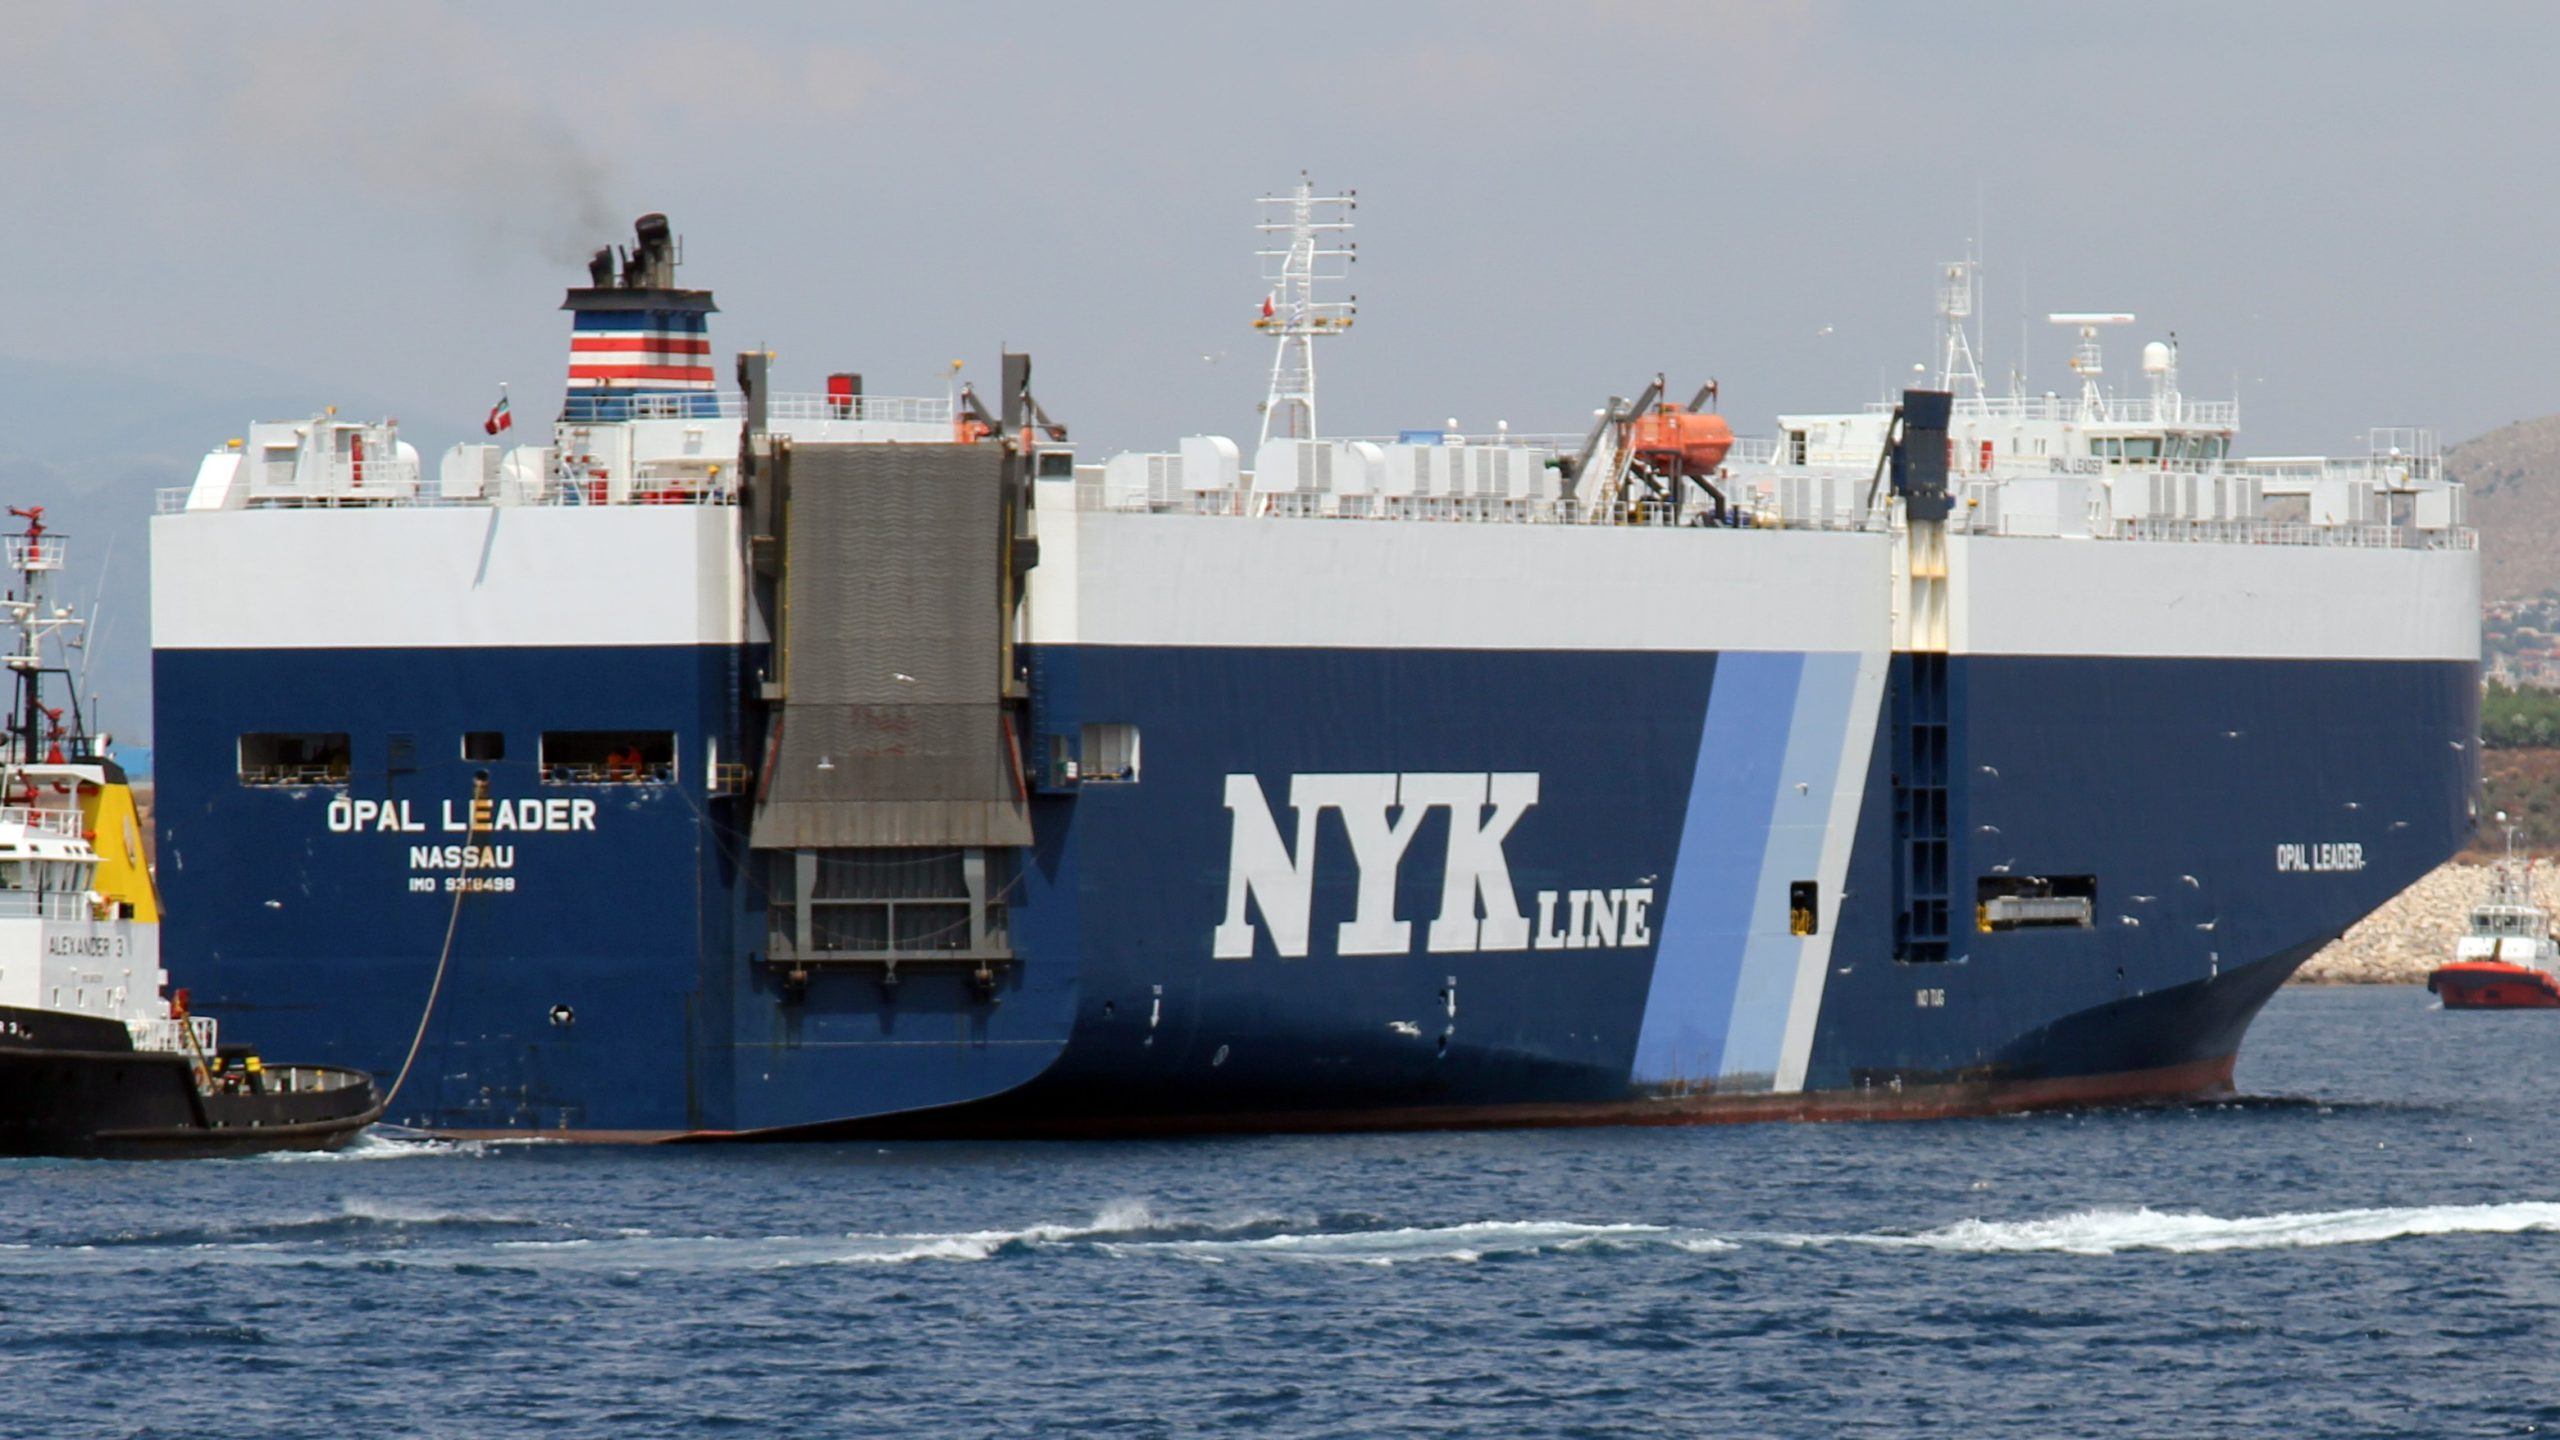 NYK Line acquired 15% of shares of a tugboat company